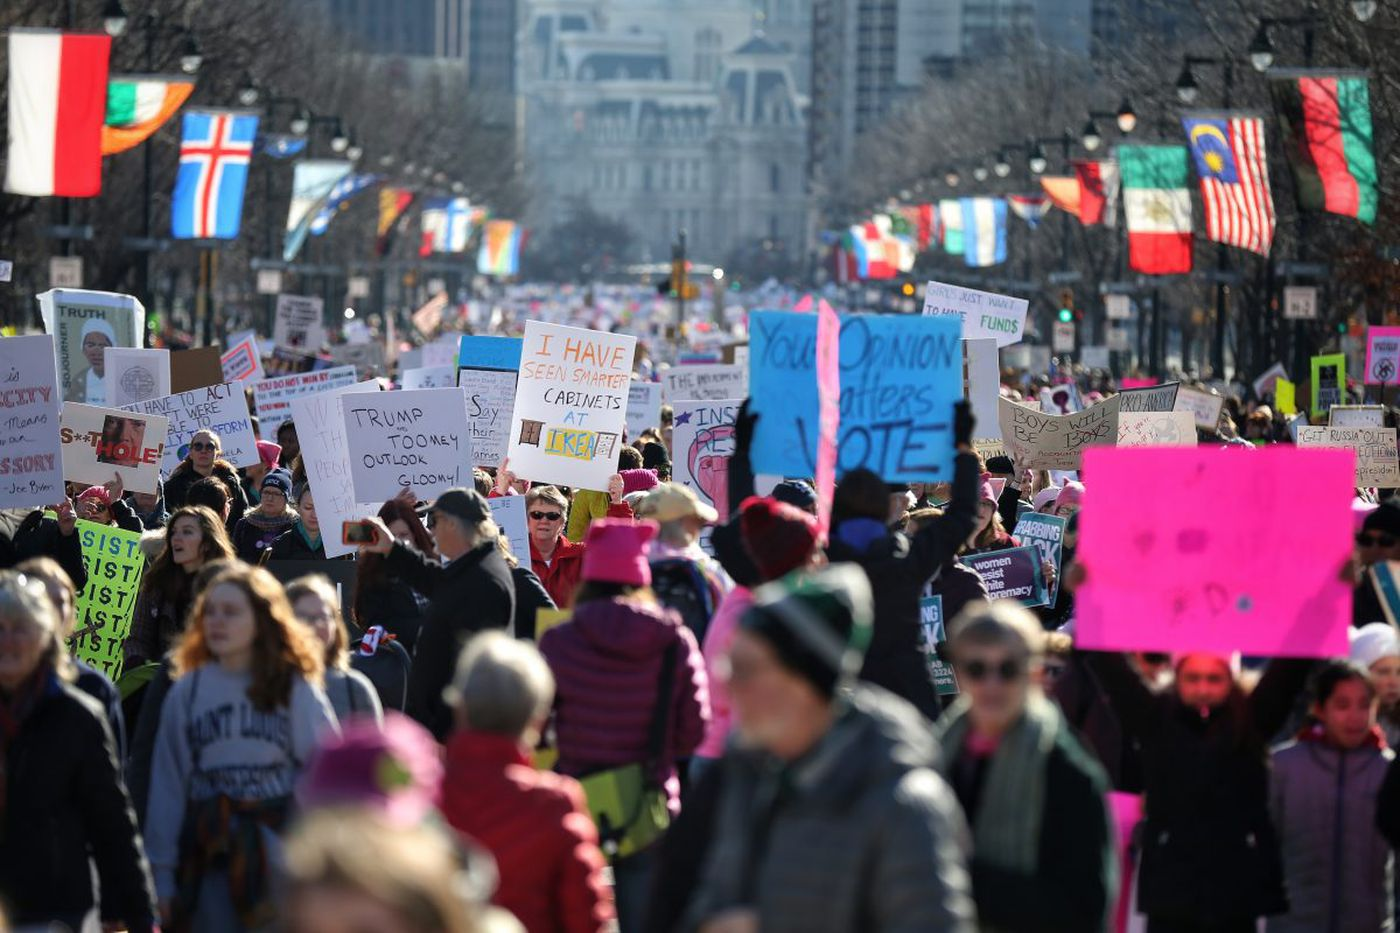 An oxymoron of anger and joy, Women's March doesn't know what's next. That's the beauty of it | Will Bunch